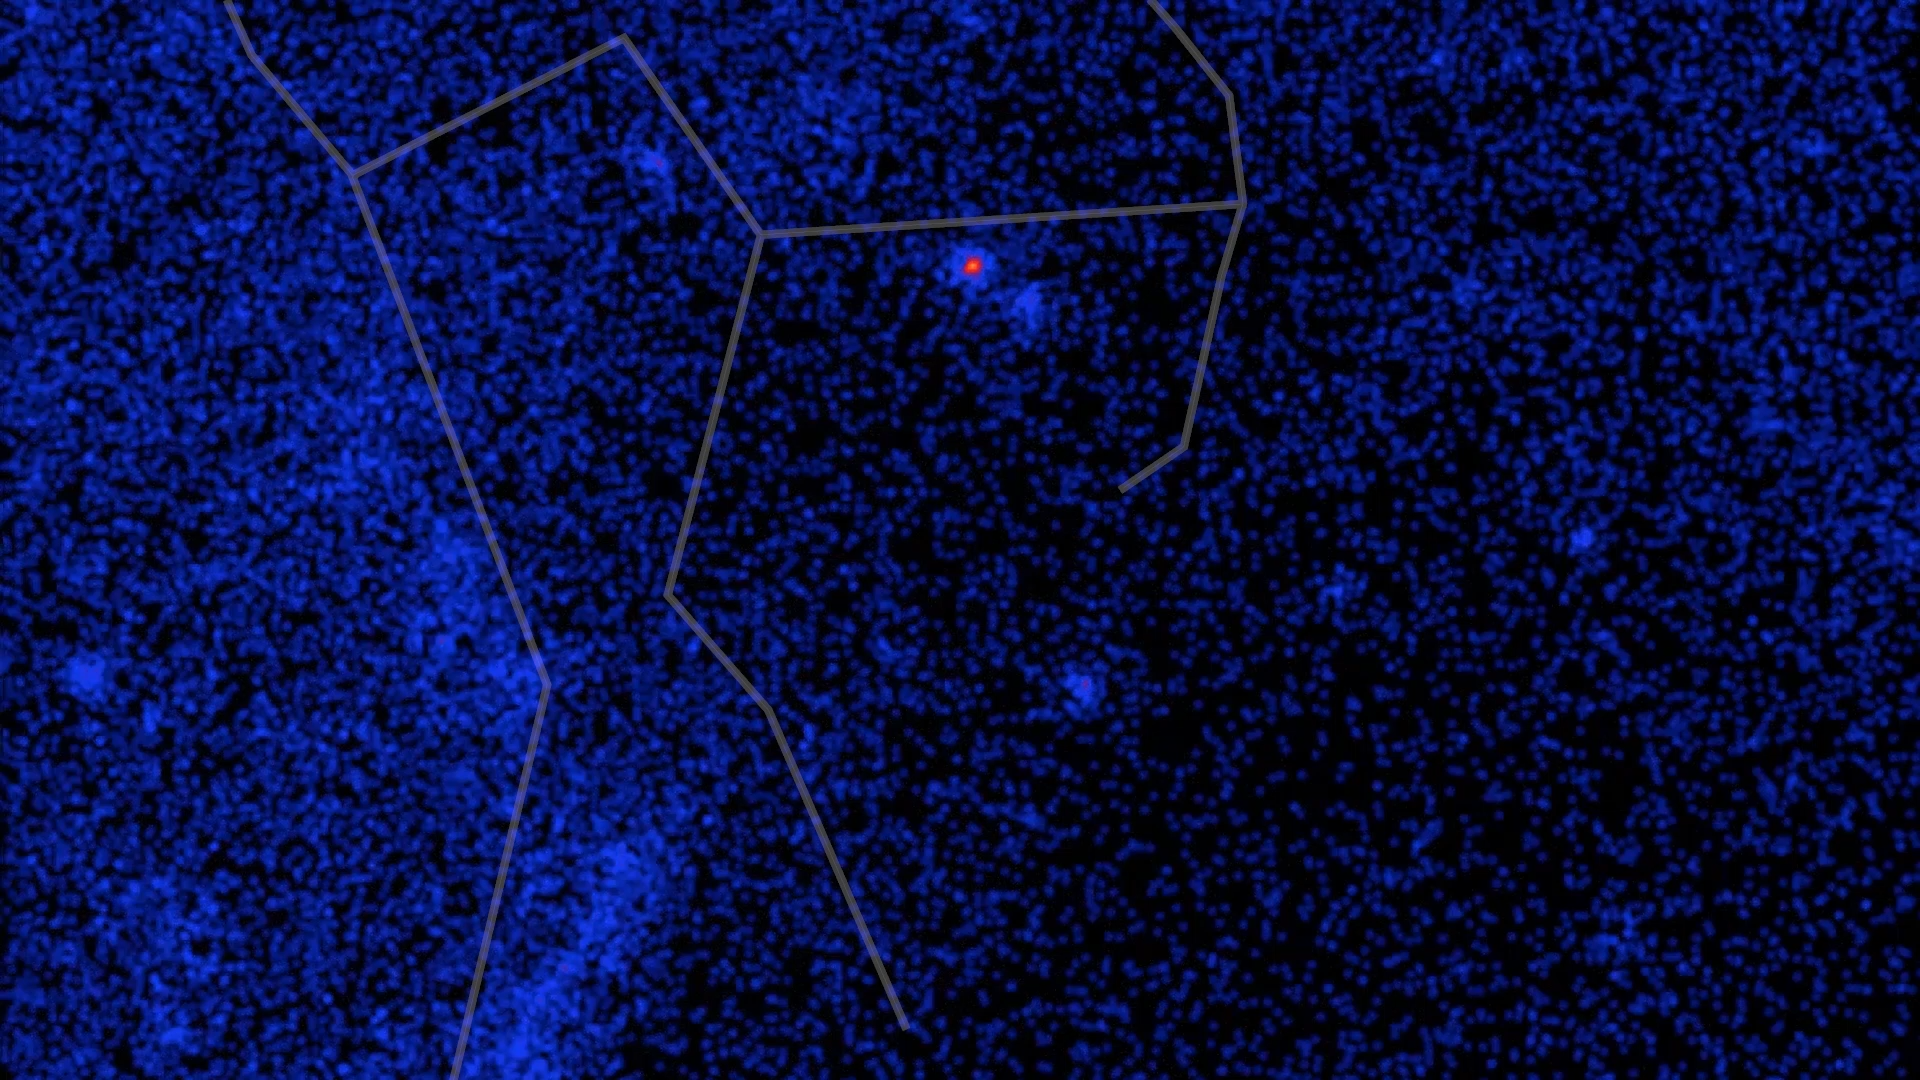 Constellation Orion, visible light to gamma rays - with lines